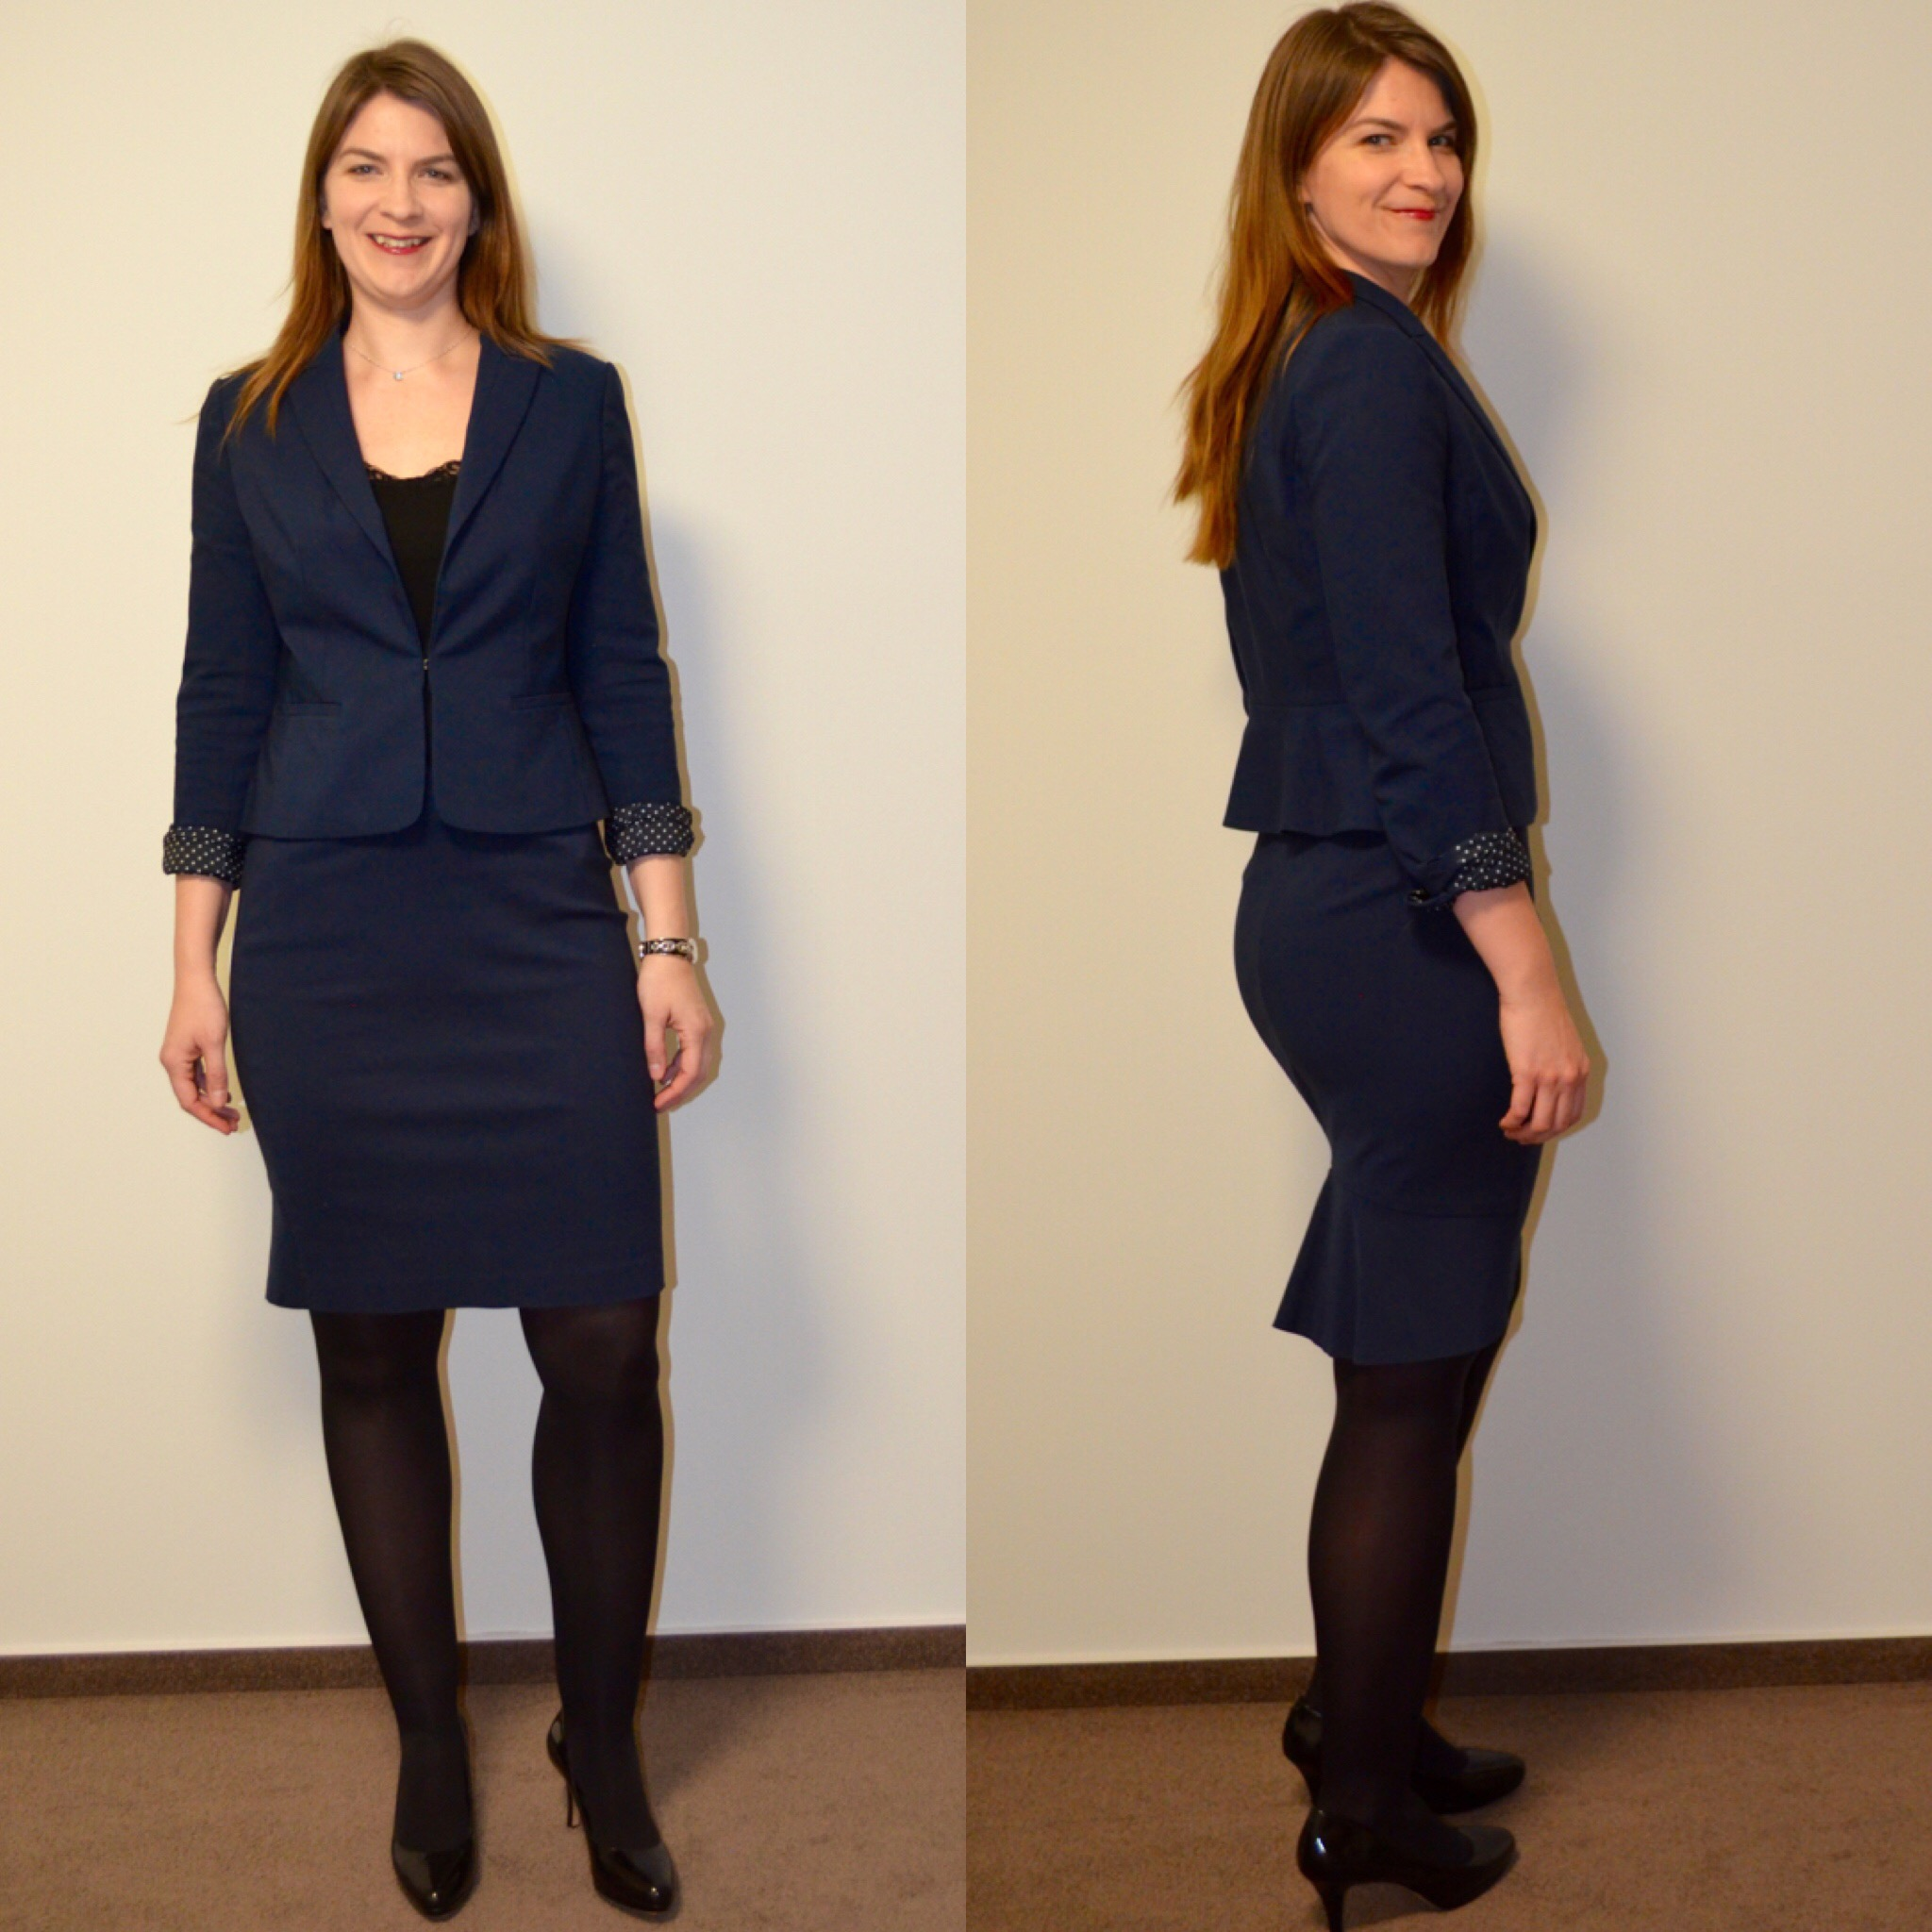 Business Suits For Tall Women And How I Cheated On My Tall